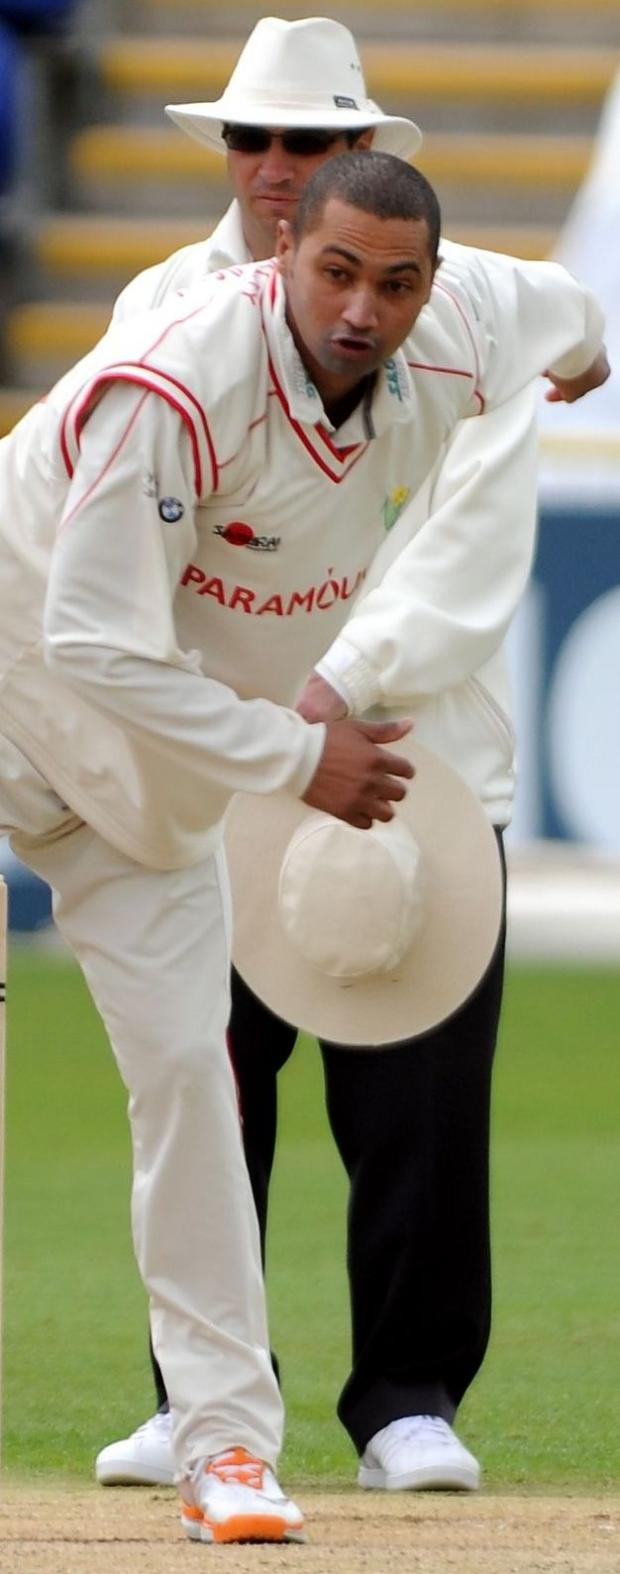 CRICKET: Alviro Petersen boost for Somerset